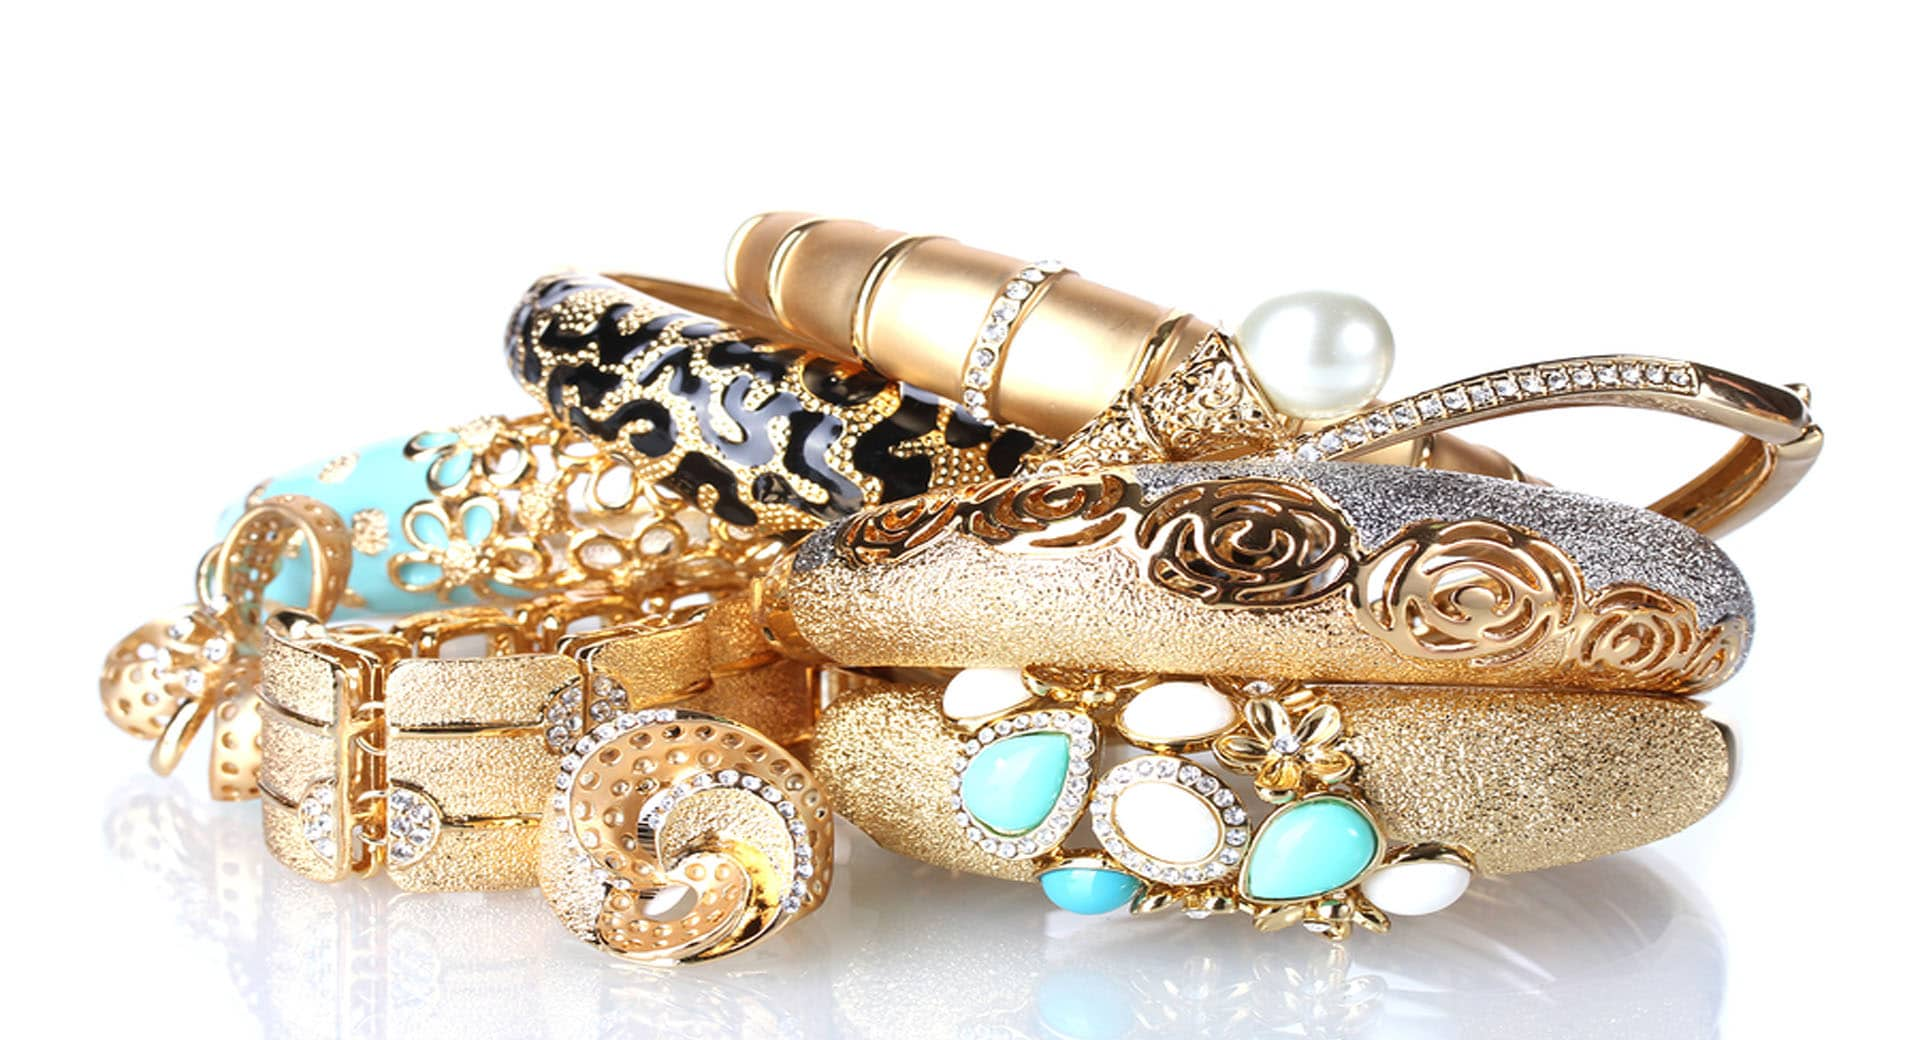 Selling and pawning and buying jewelry in Phoenix, Arizona